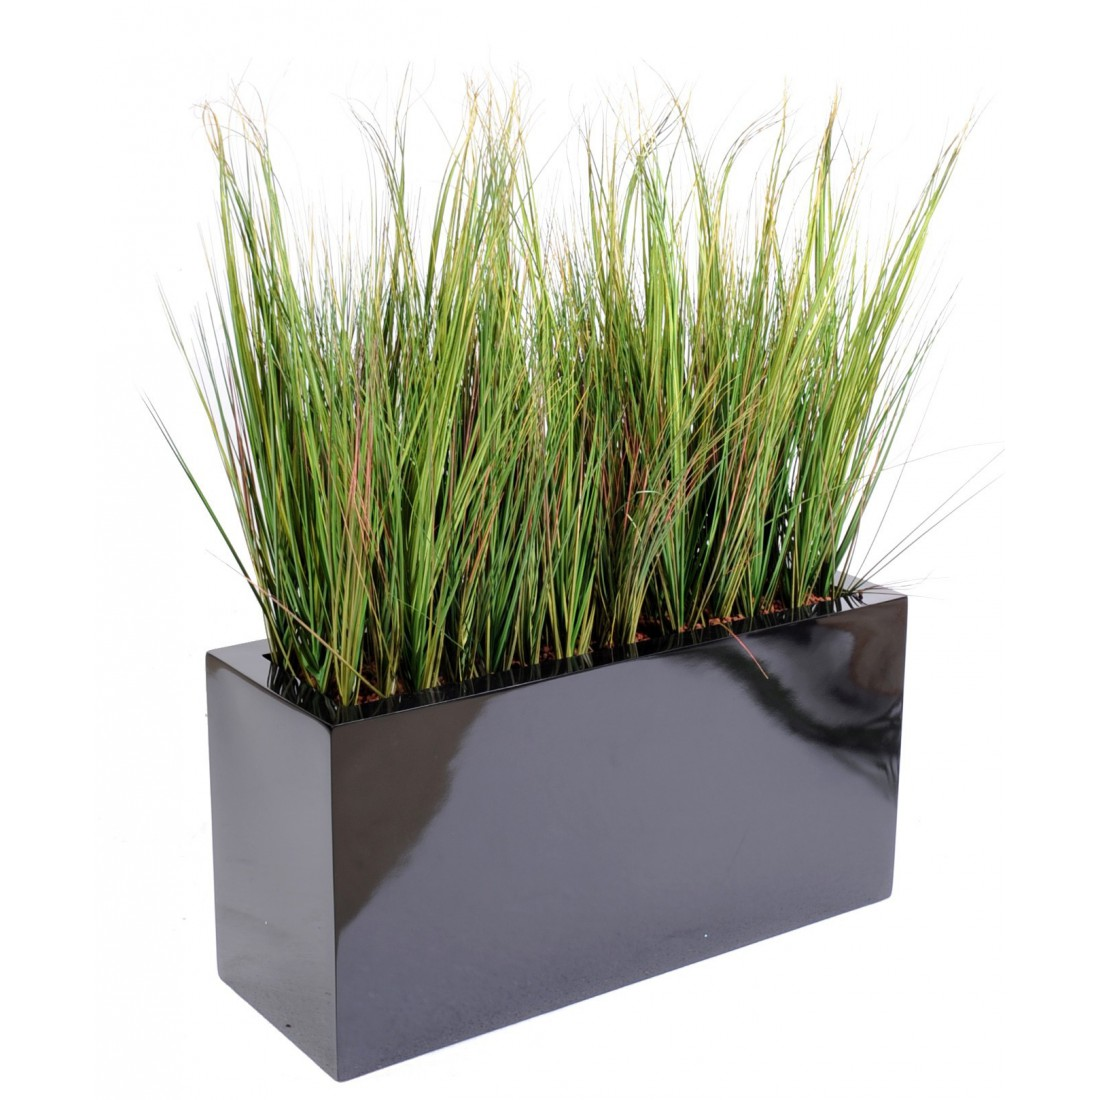 onion grass artificiel en jardiniere 100 cm gramin es artificielles reflets nature lyon. Black Bedroom Furniture Sets. Home Design Ideas